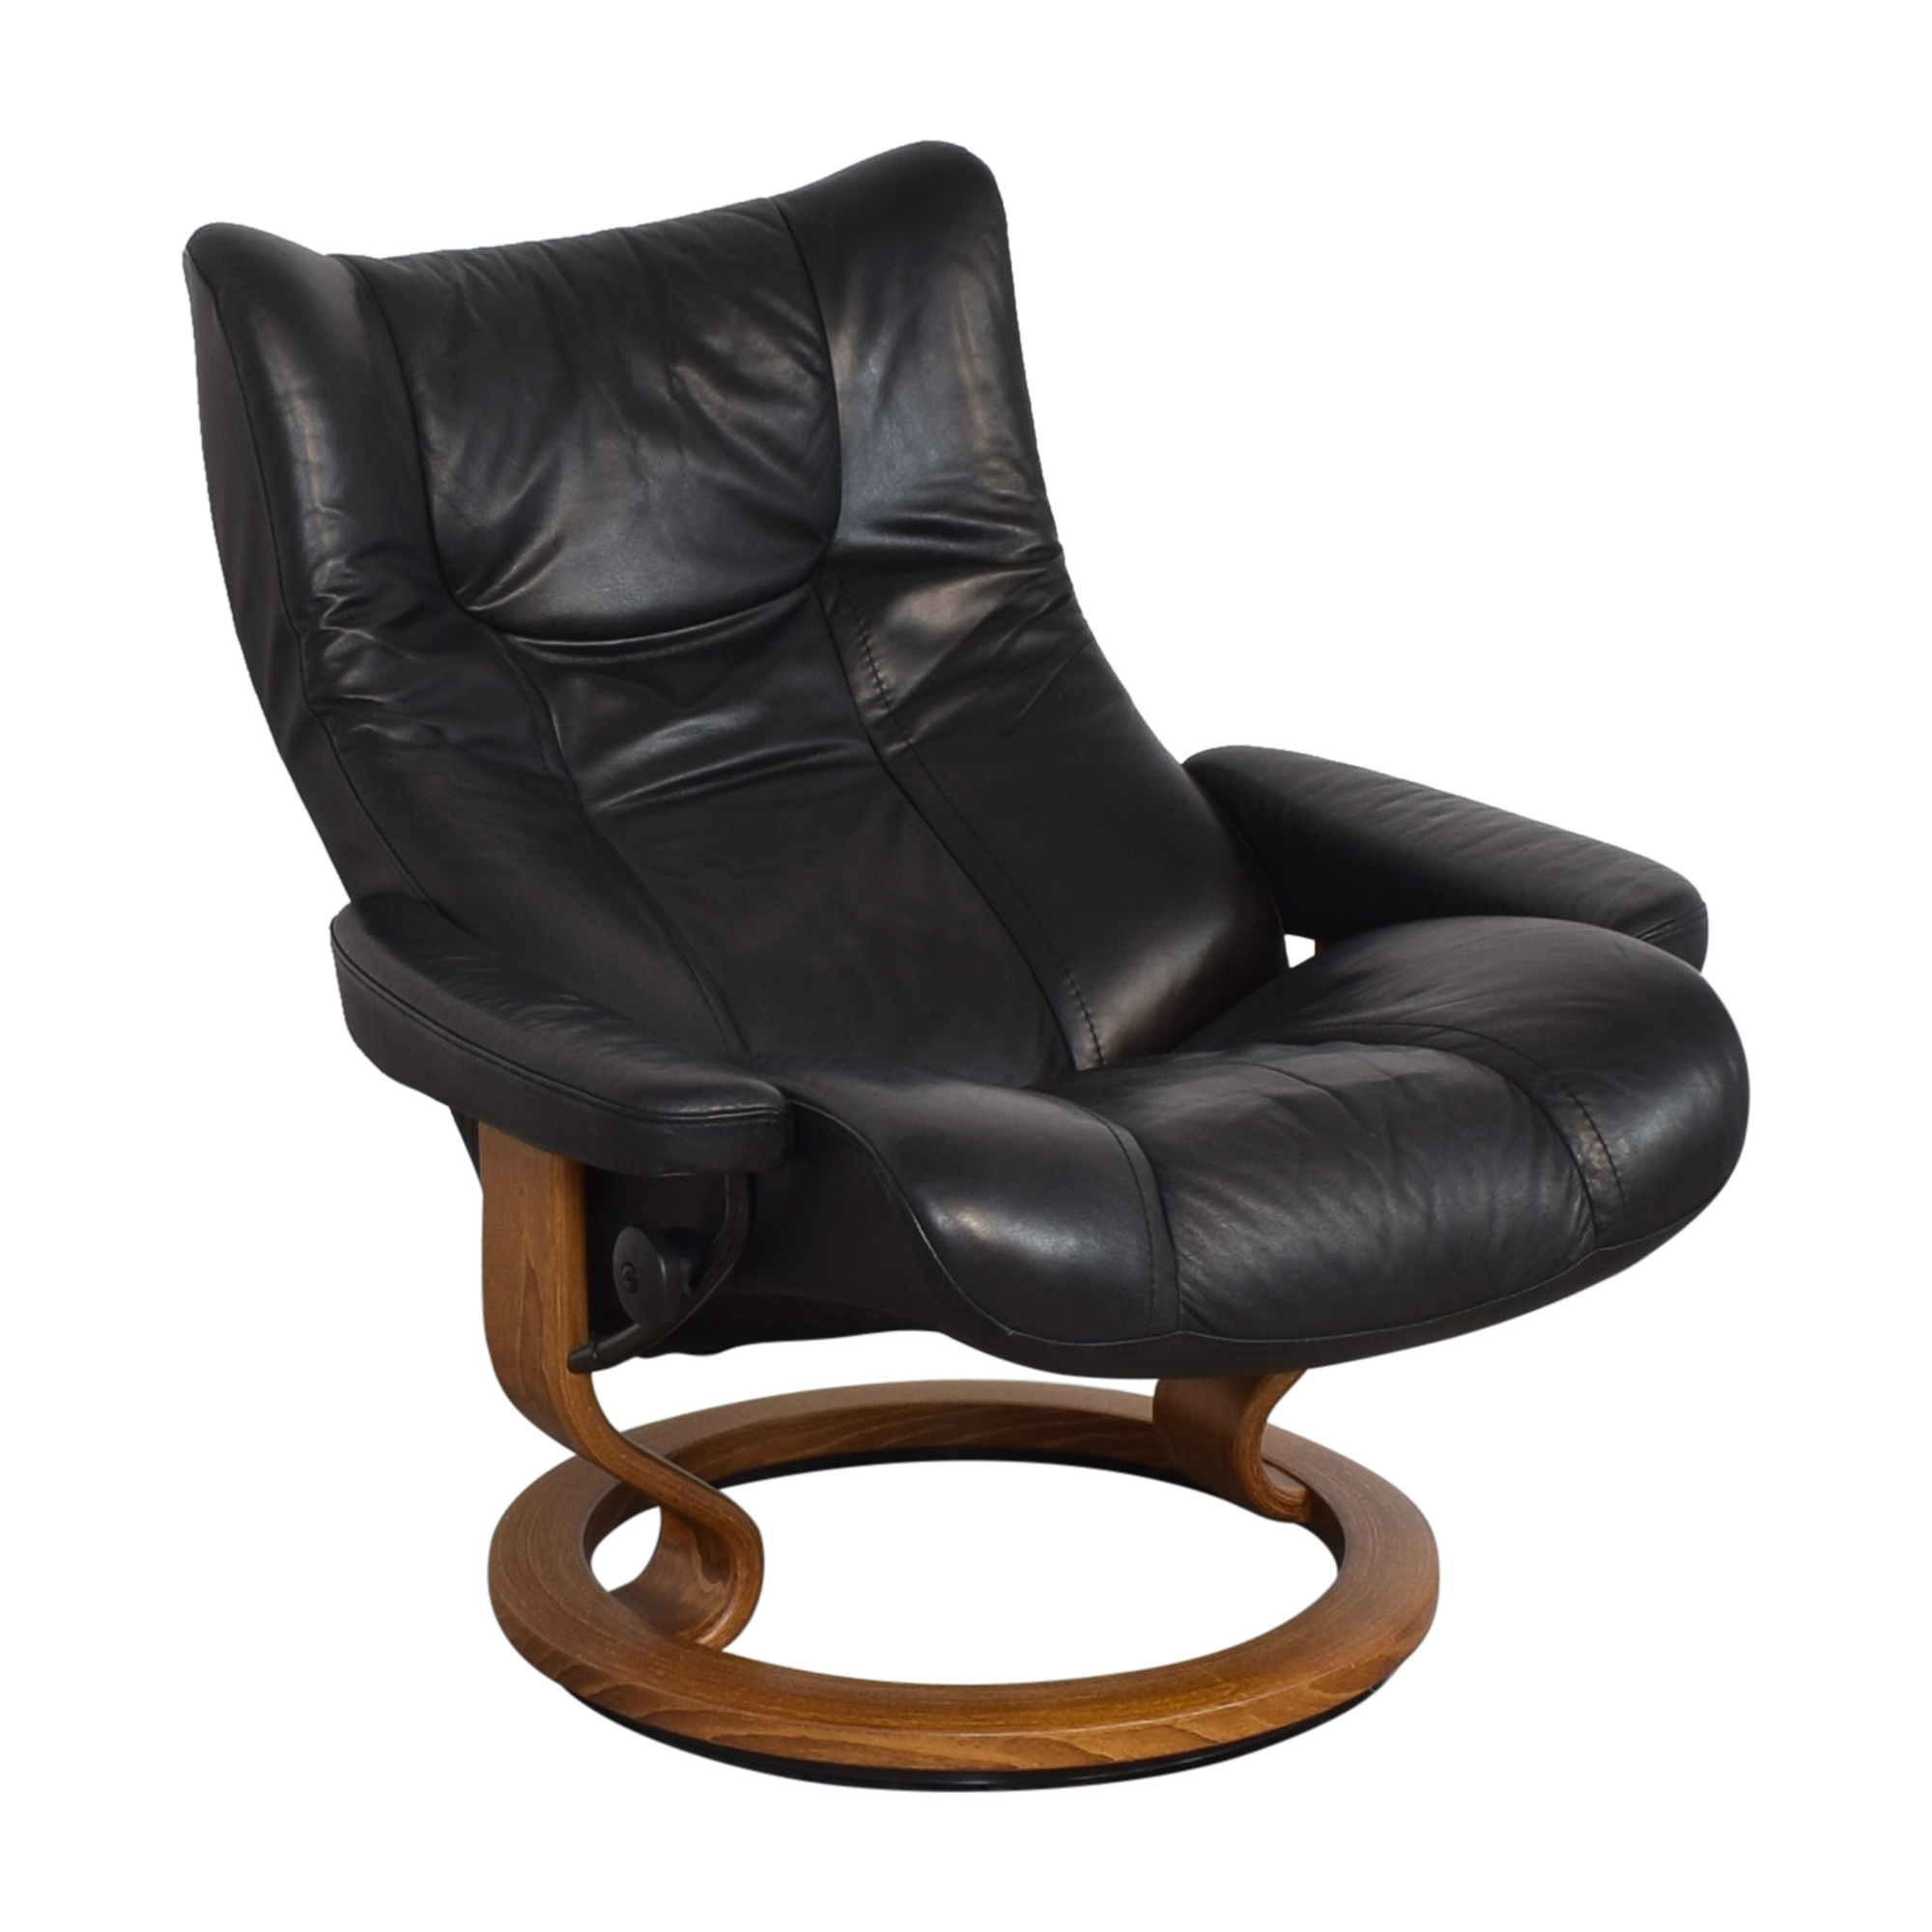 Ekornes Ekornes Stressless Chair with Ottoman ma